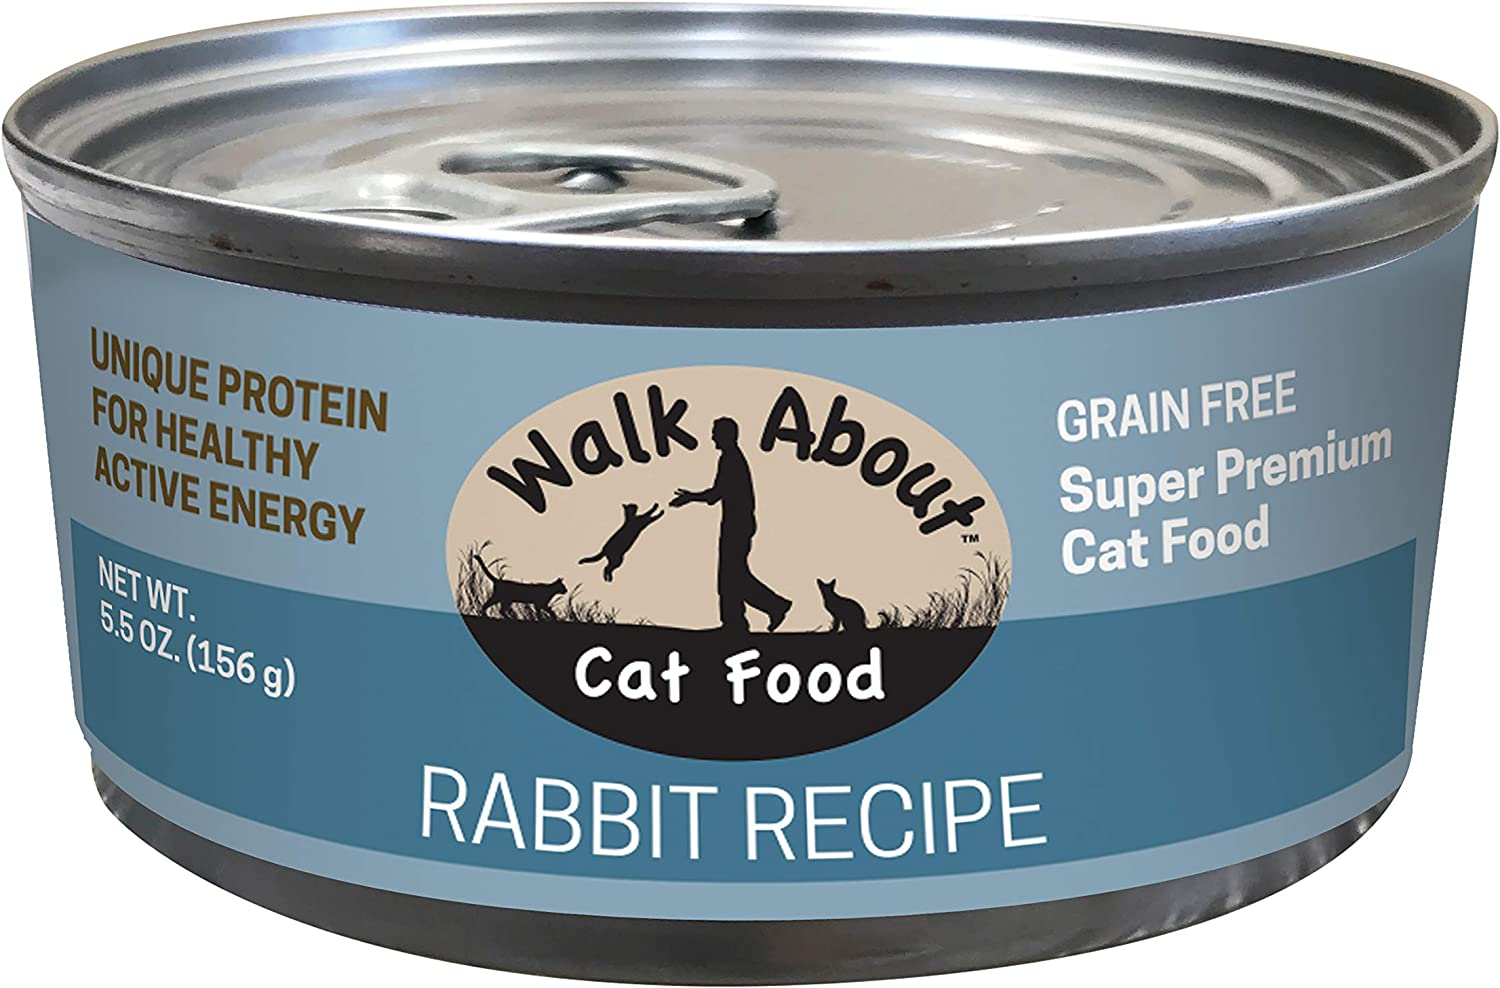 Walk About Pet,Super Premium Cat Food